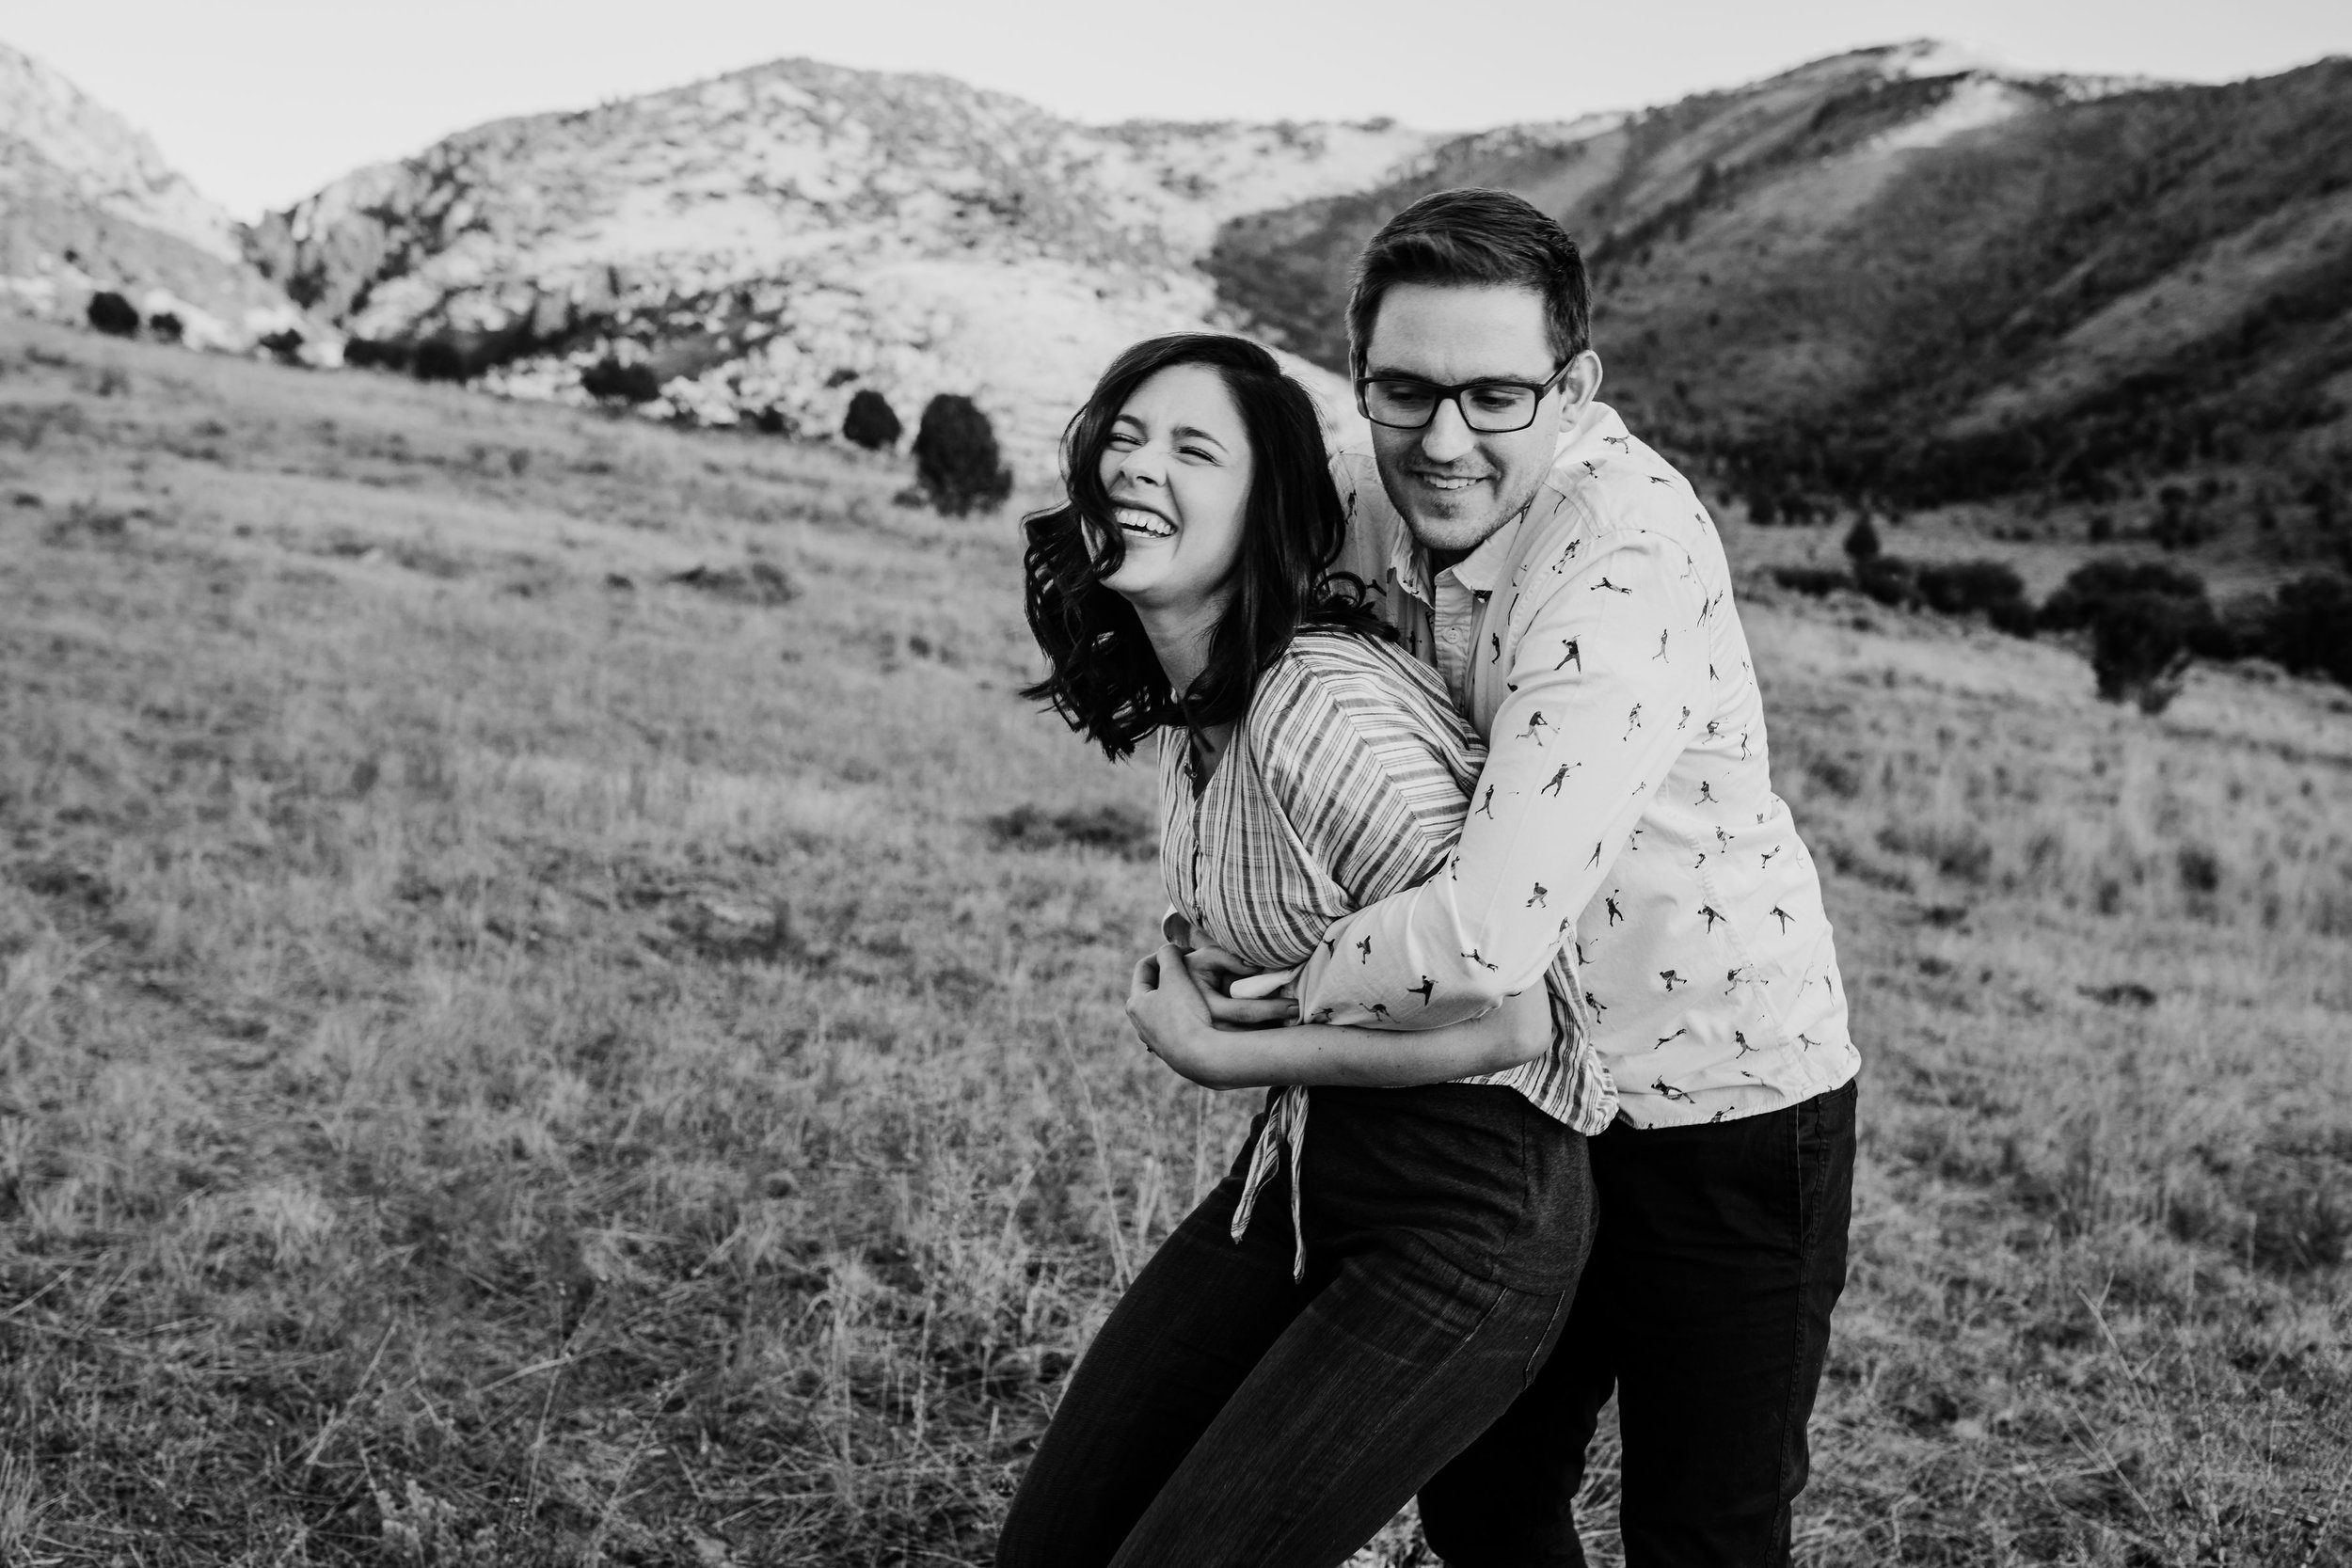 best professional engagement photographer logan utah mountaing hugging running playful smiling laughing